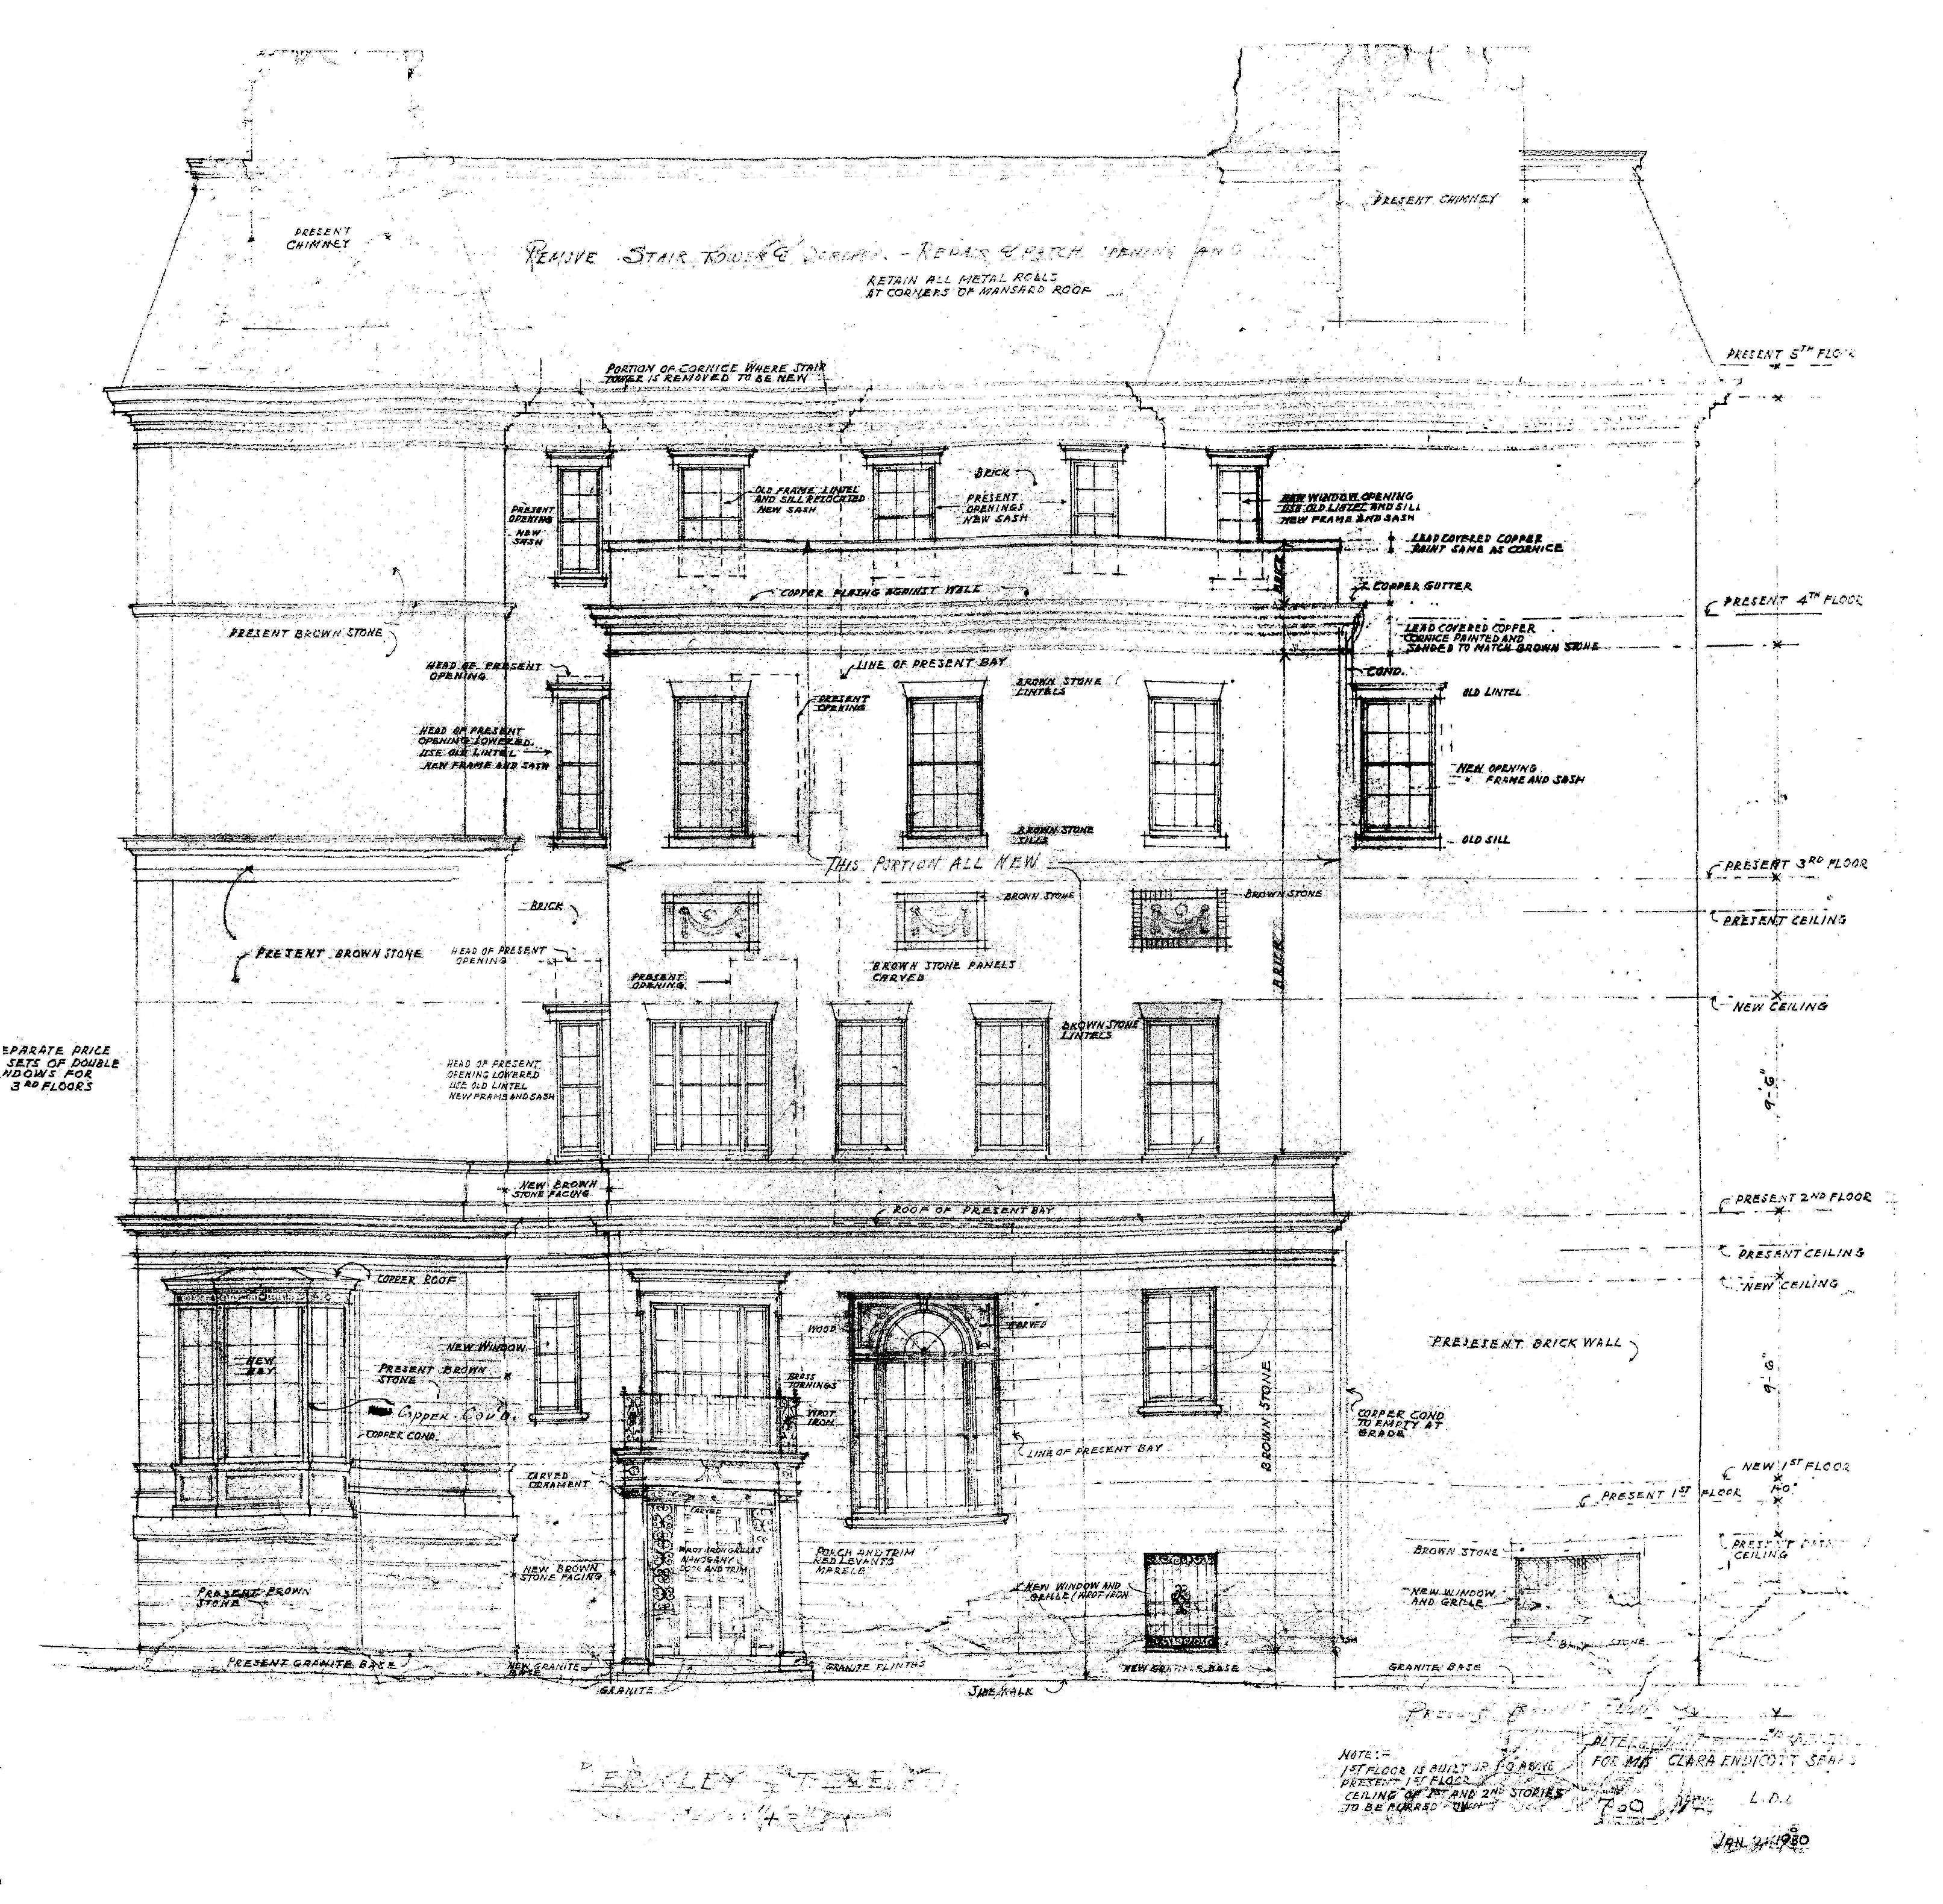 Beac 132 berkeley elevation bpl blueprint 1930 bw 1 back published november 18 2015 at 3225 3160 in malvernweather Image collections